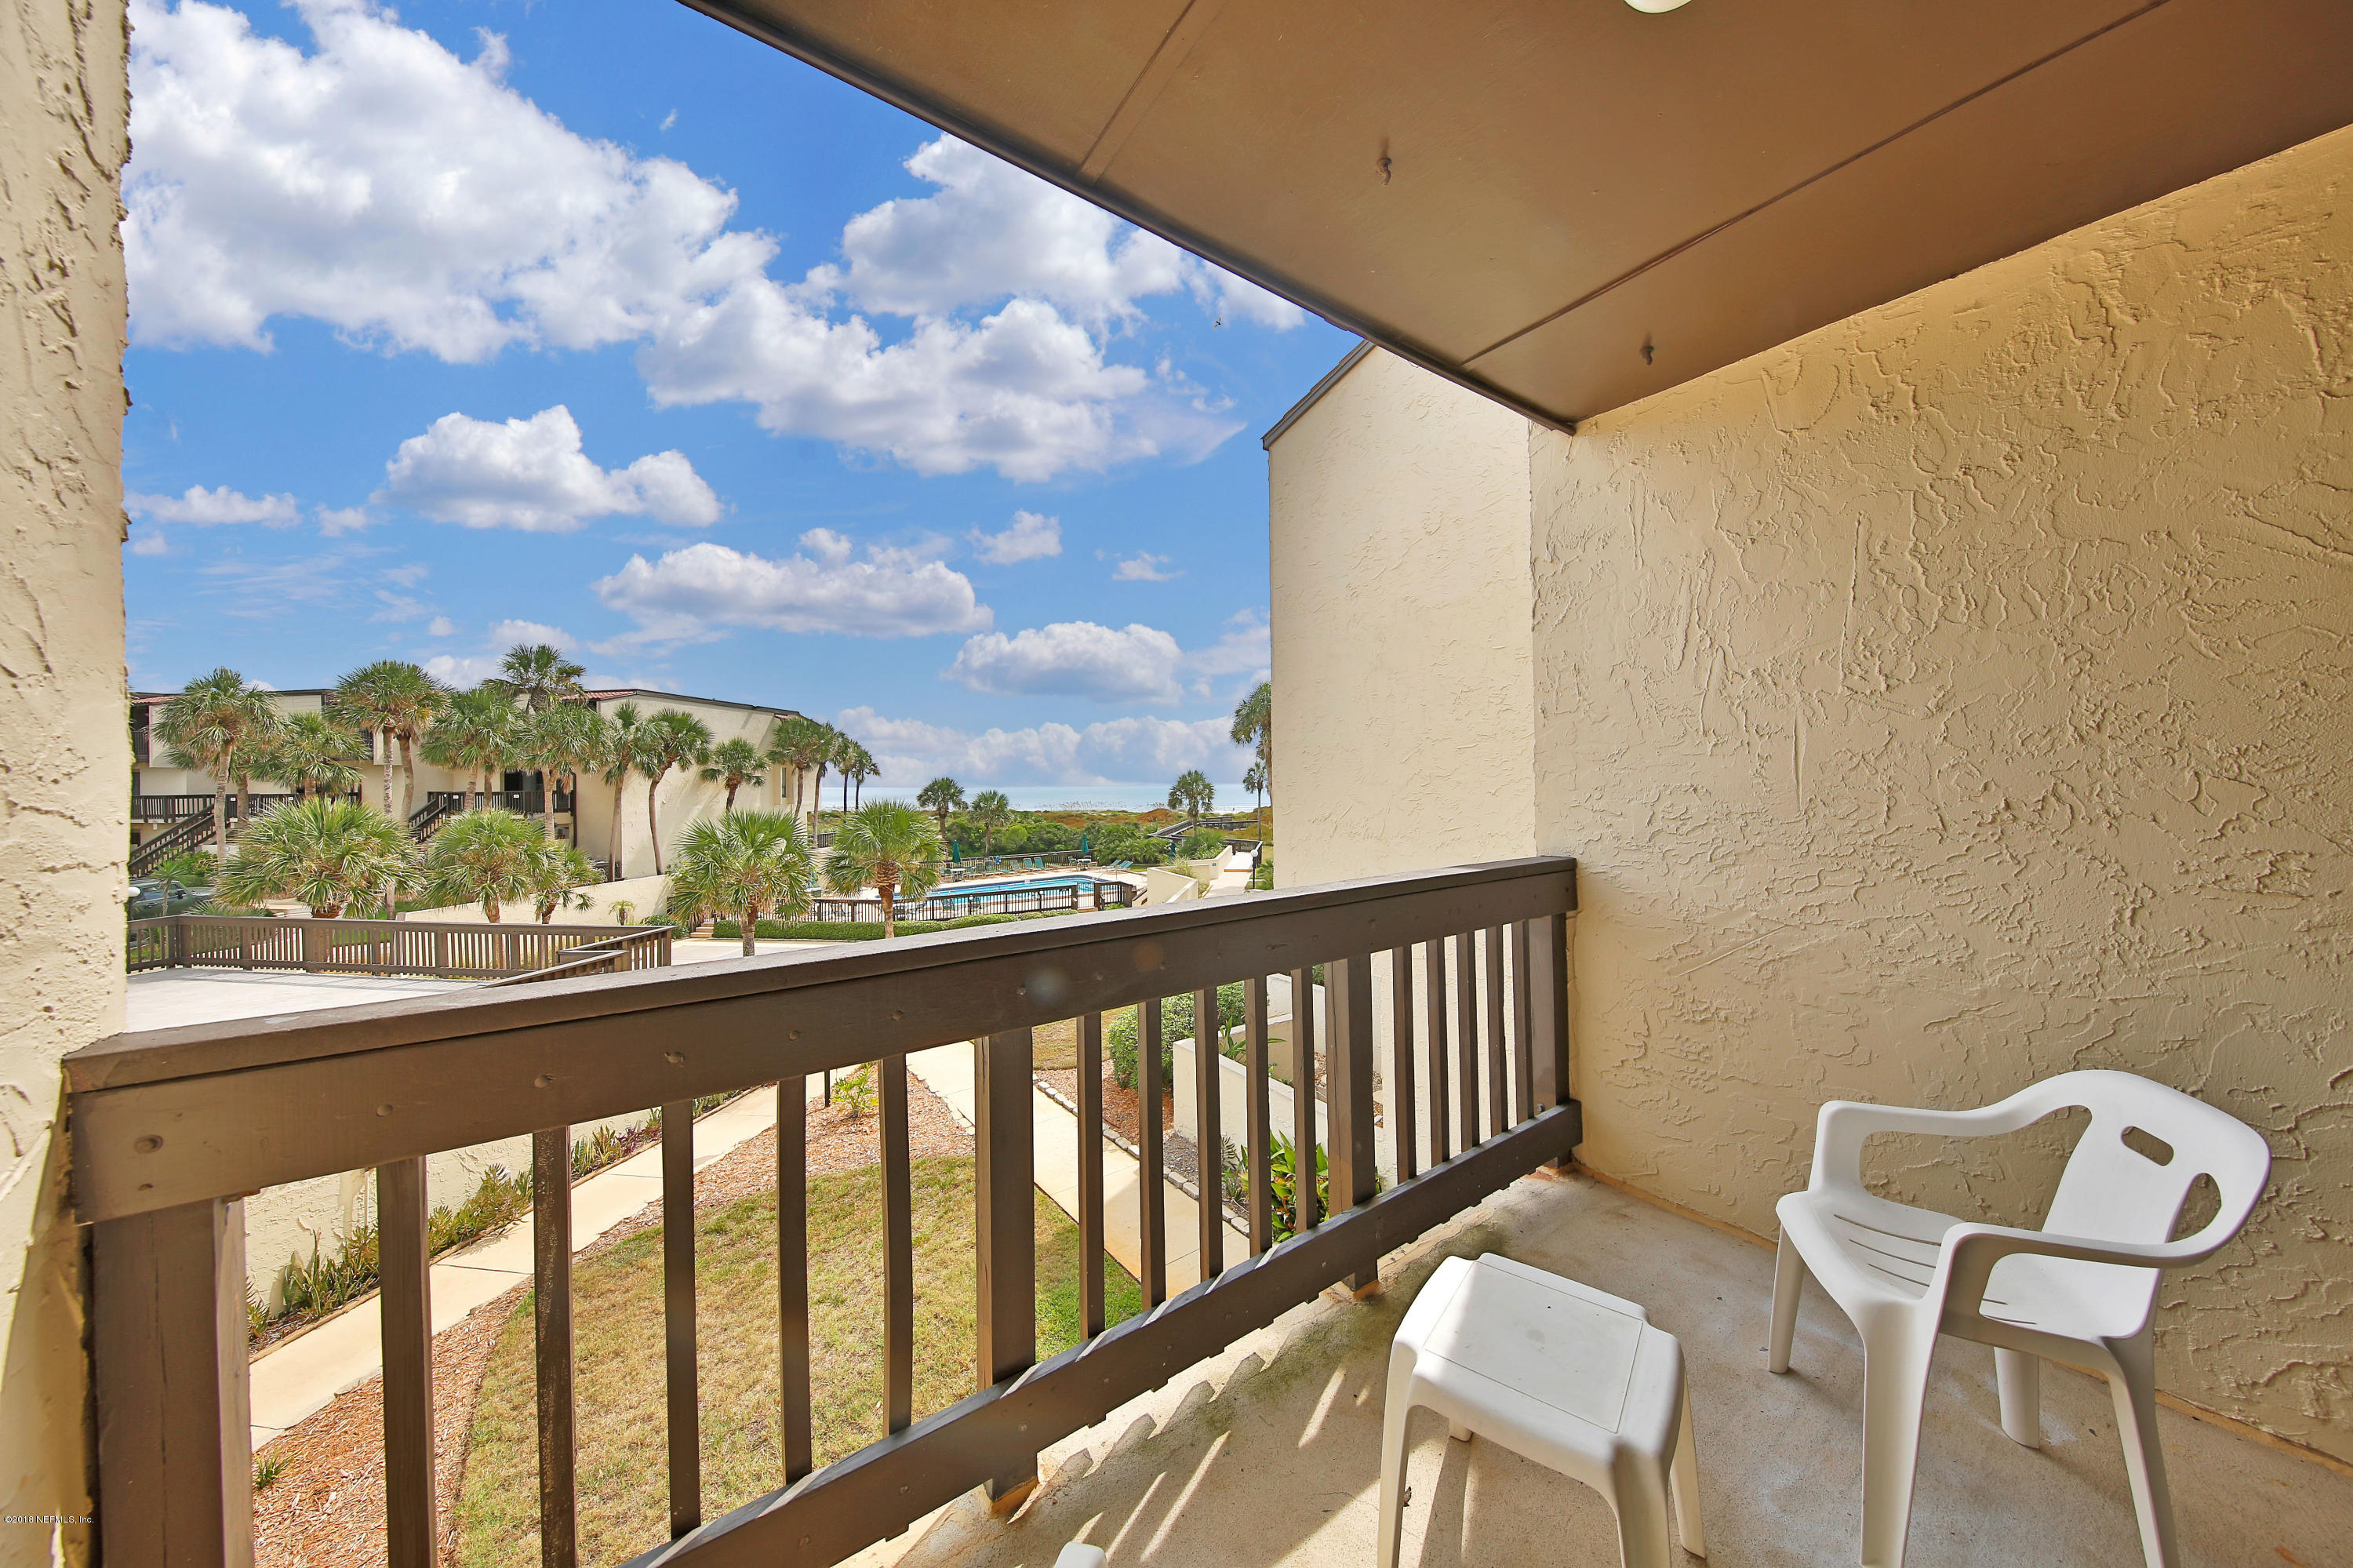 5650 A1A, ST AUGUSTINE, FLORIDA 32080, 2 Bedrooms Bedrooms, ,2 BathroomsBathrooms,Residential - condos/townhomes,For sale,A1A,953866